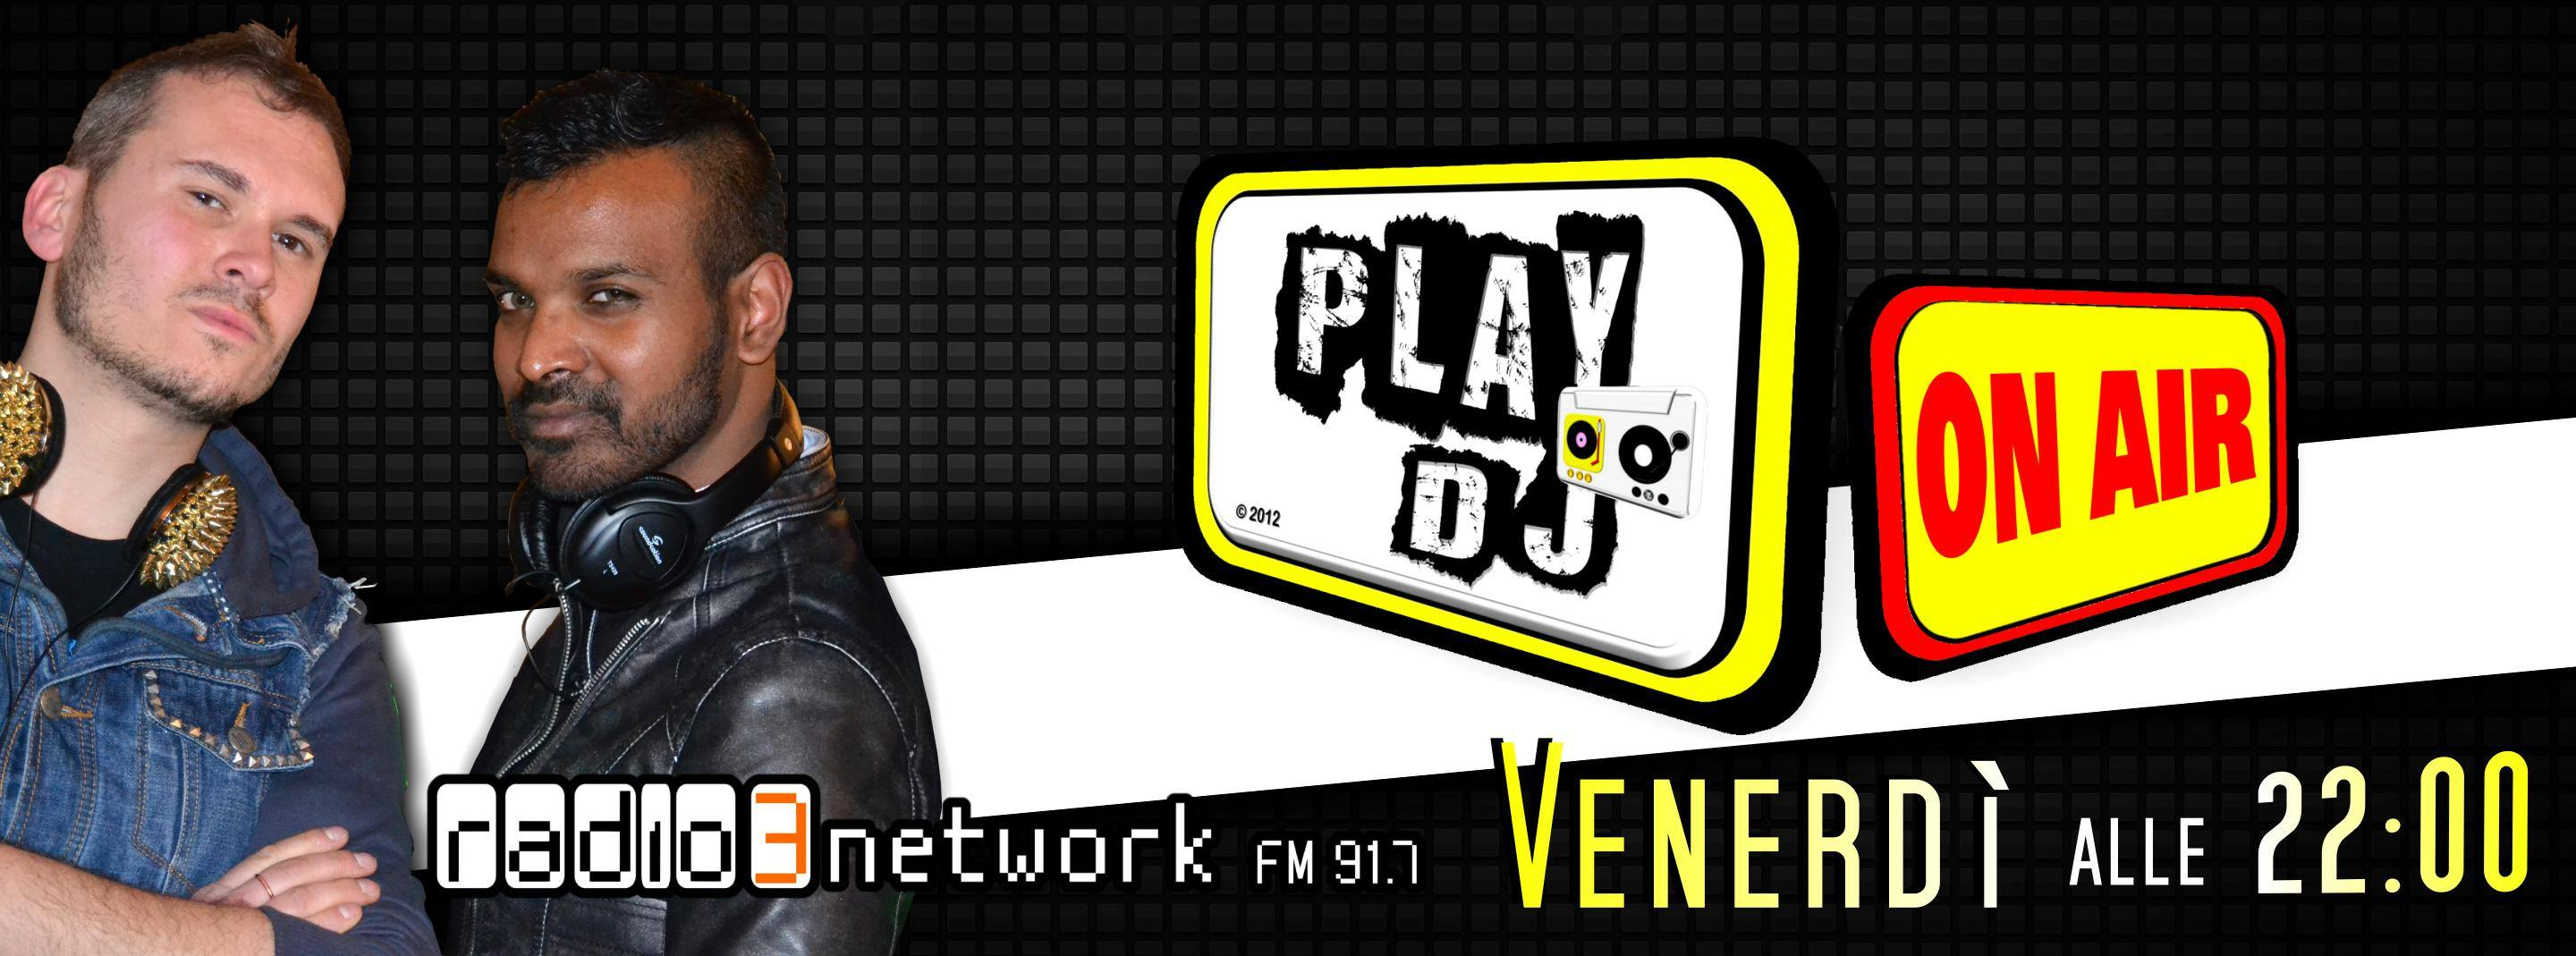 Play DJ On Air